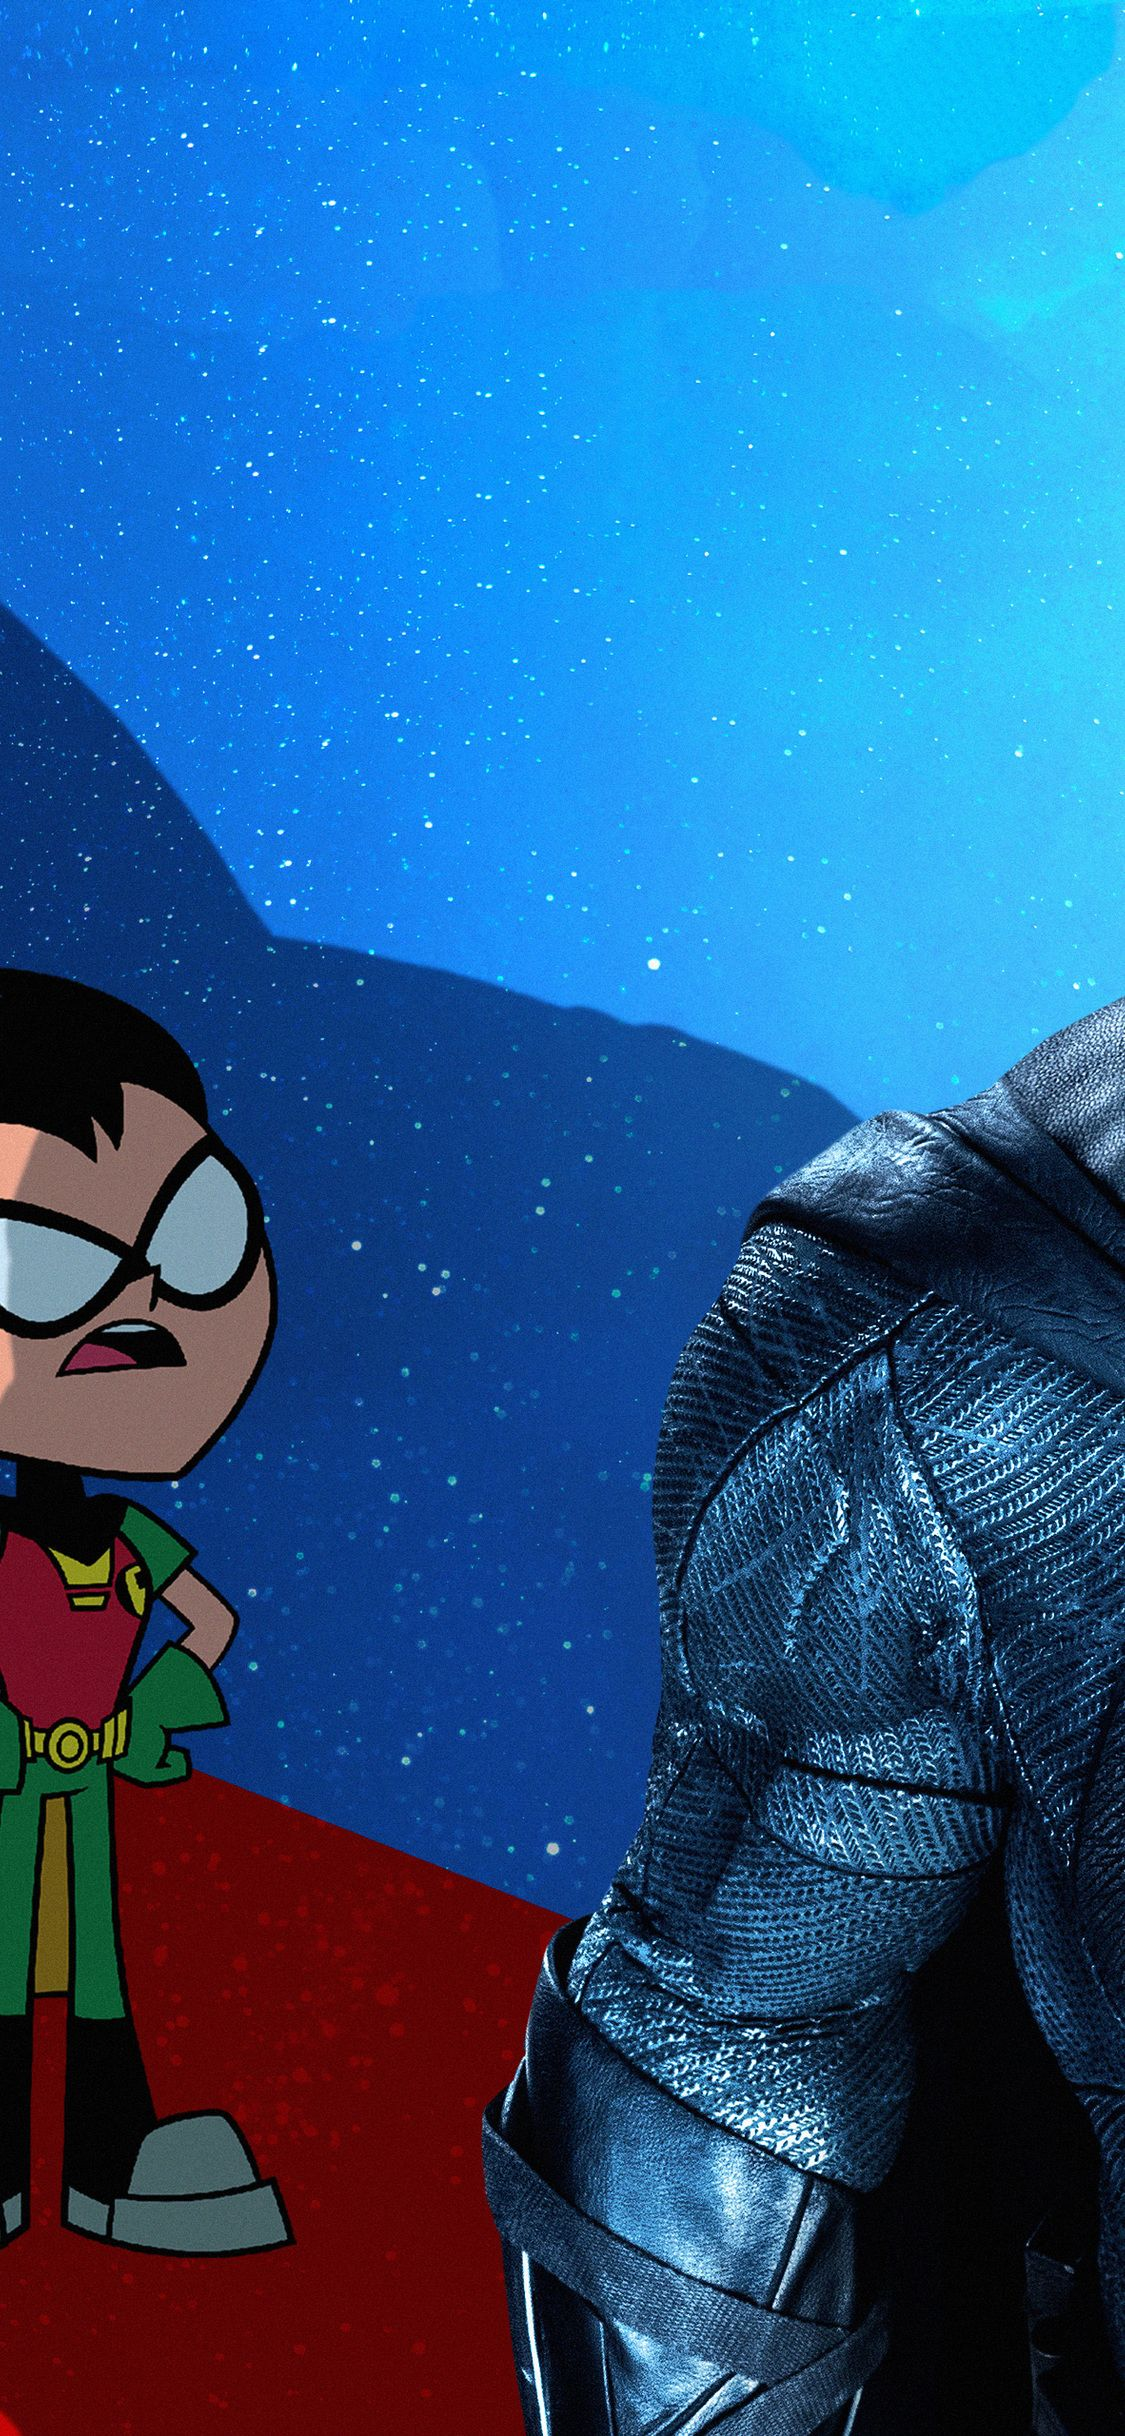 1125x2436 1125x2436 Robin In Teen Titans Go To The Movies 2018 Movie ...